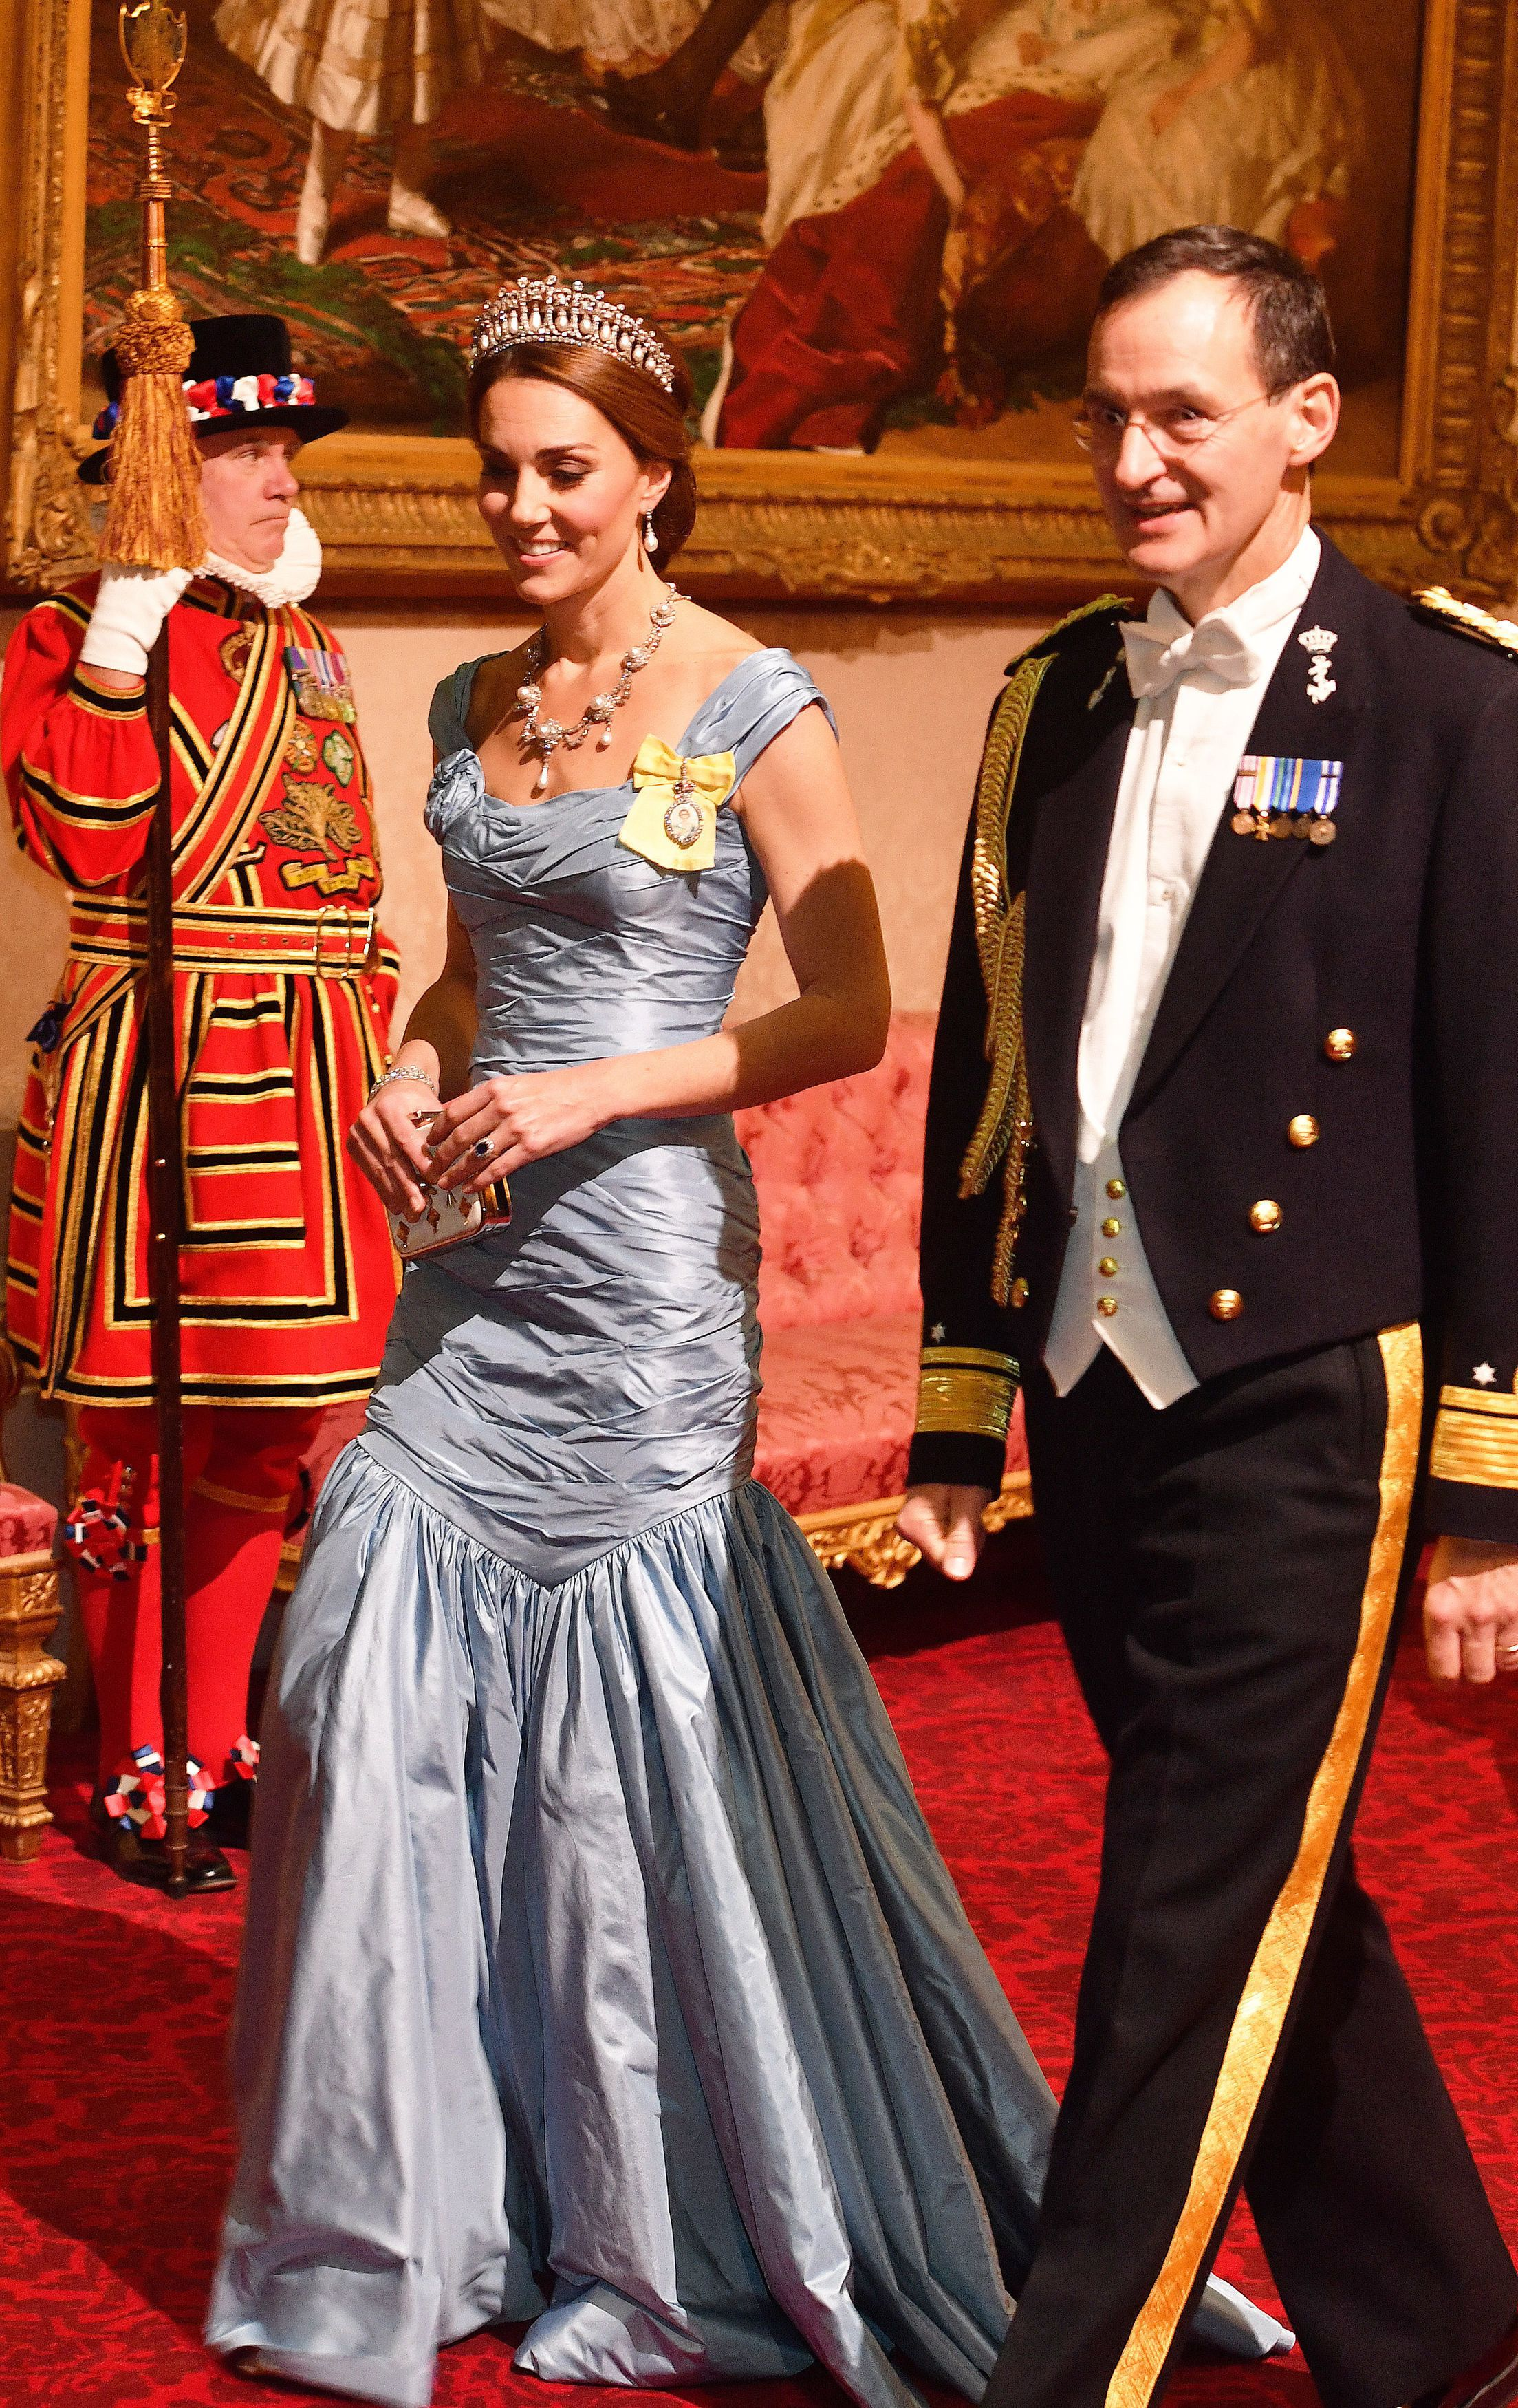 b635b7b180e Kate Middleton s Best Fashion Looks - Duchess of Cambridge s Chic Outfits